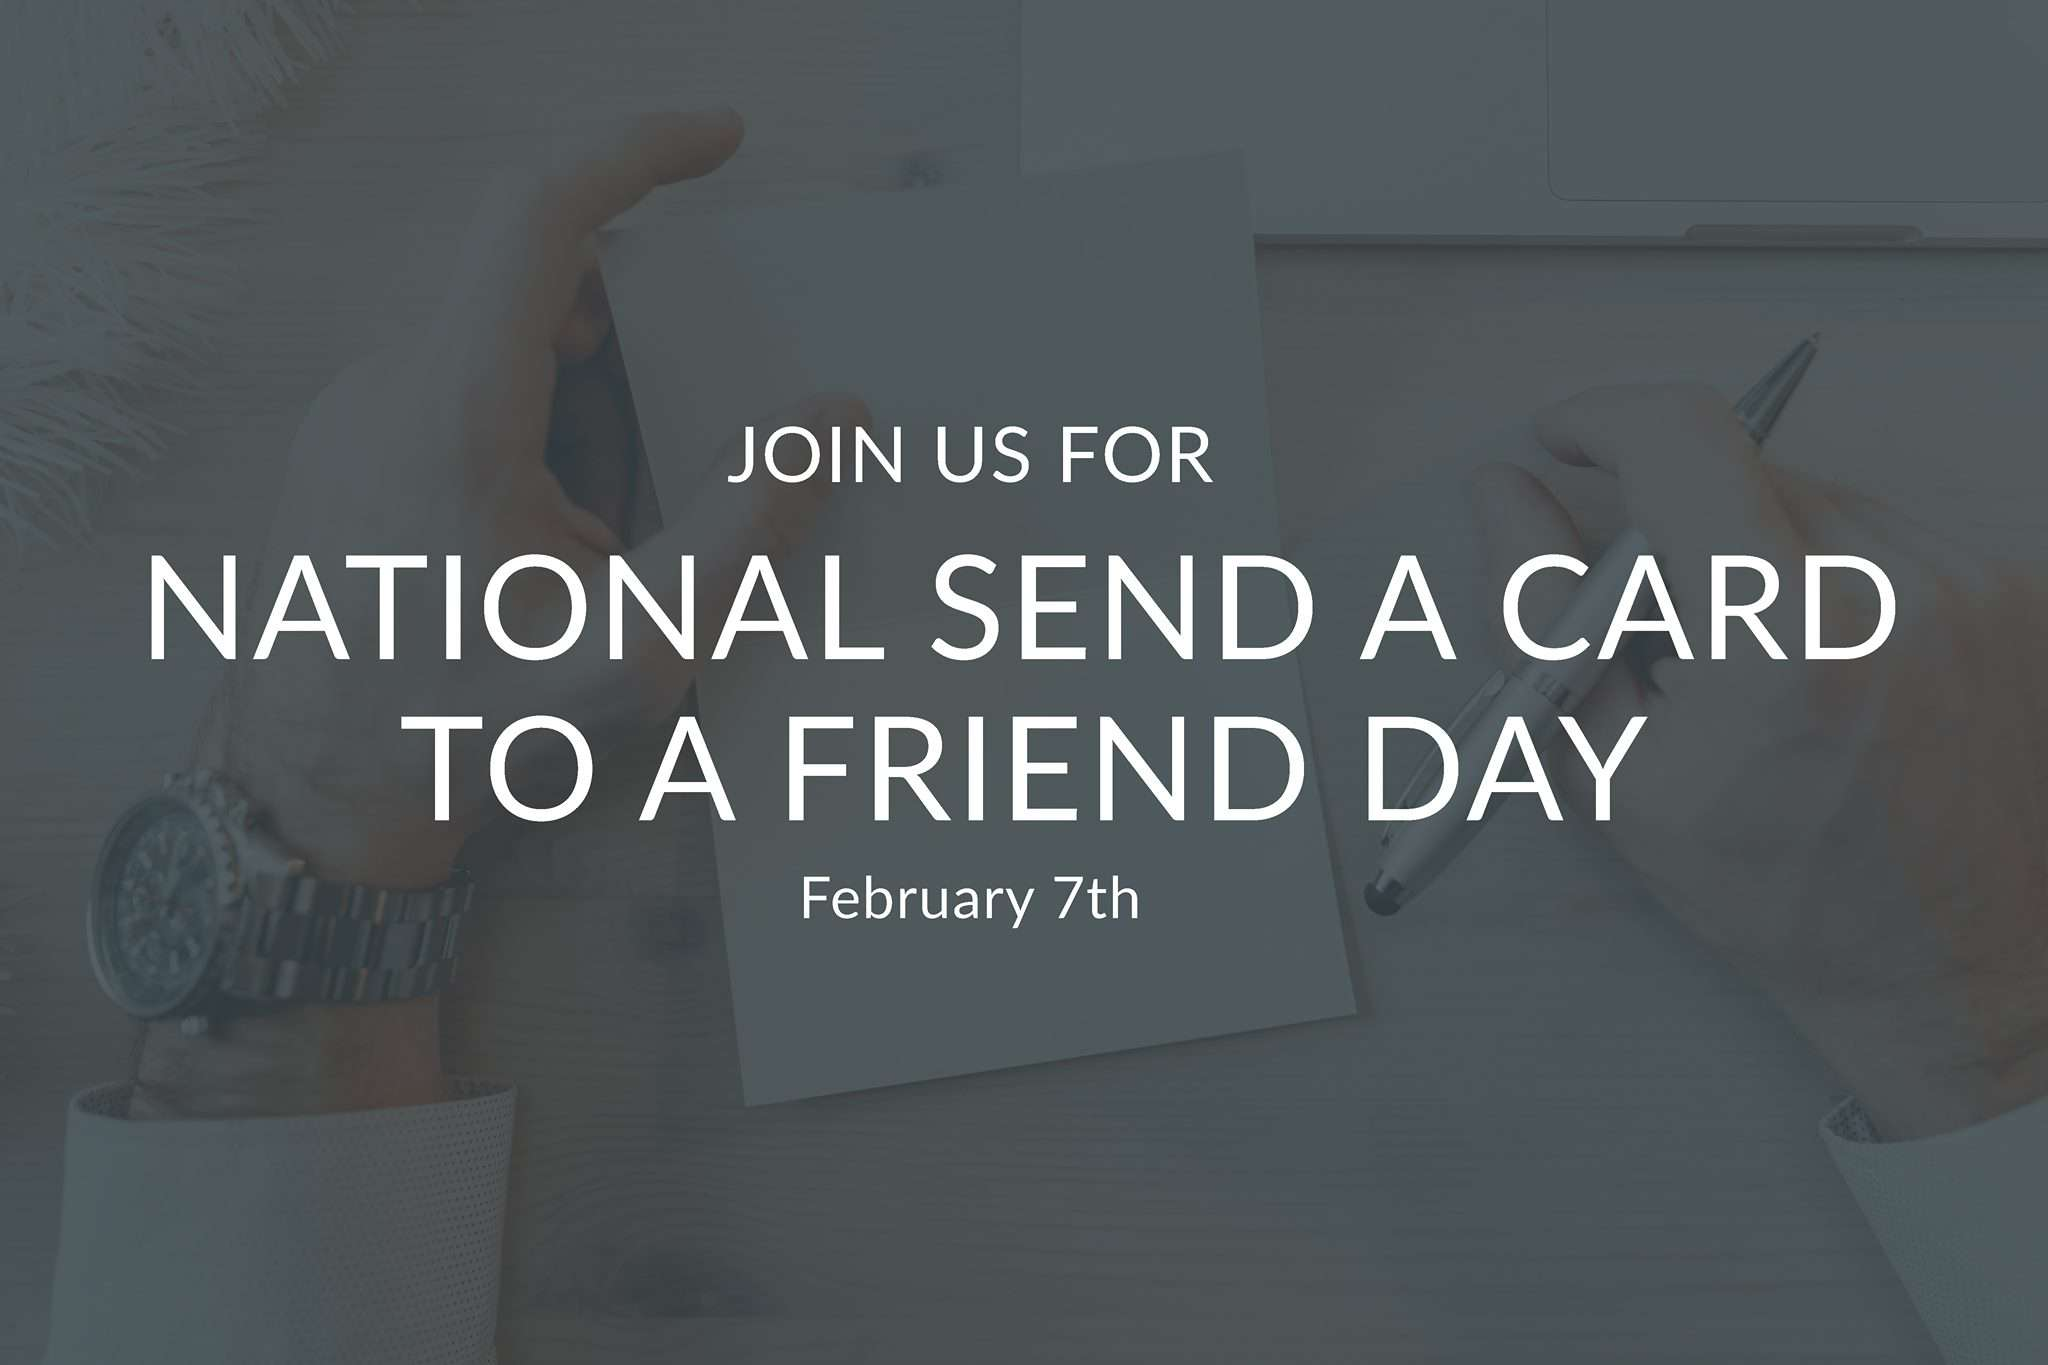 National Send a Card to a Friend Day Wishes for Instagram